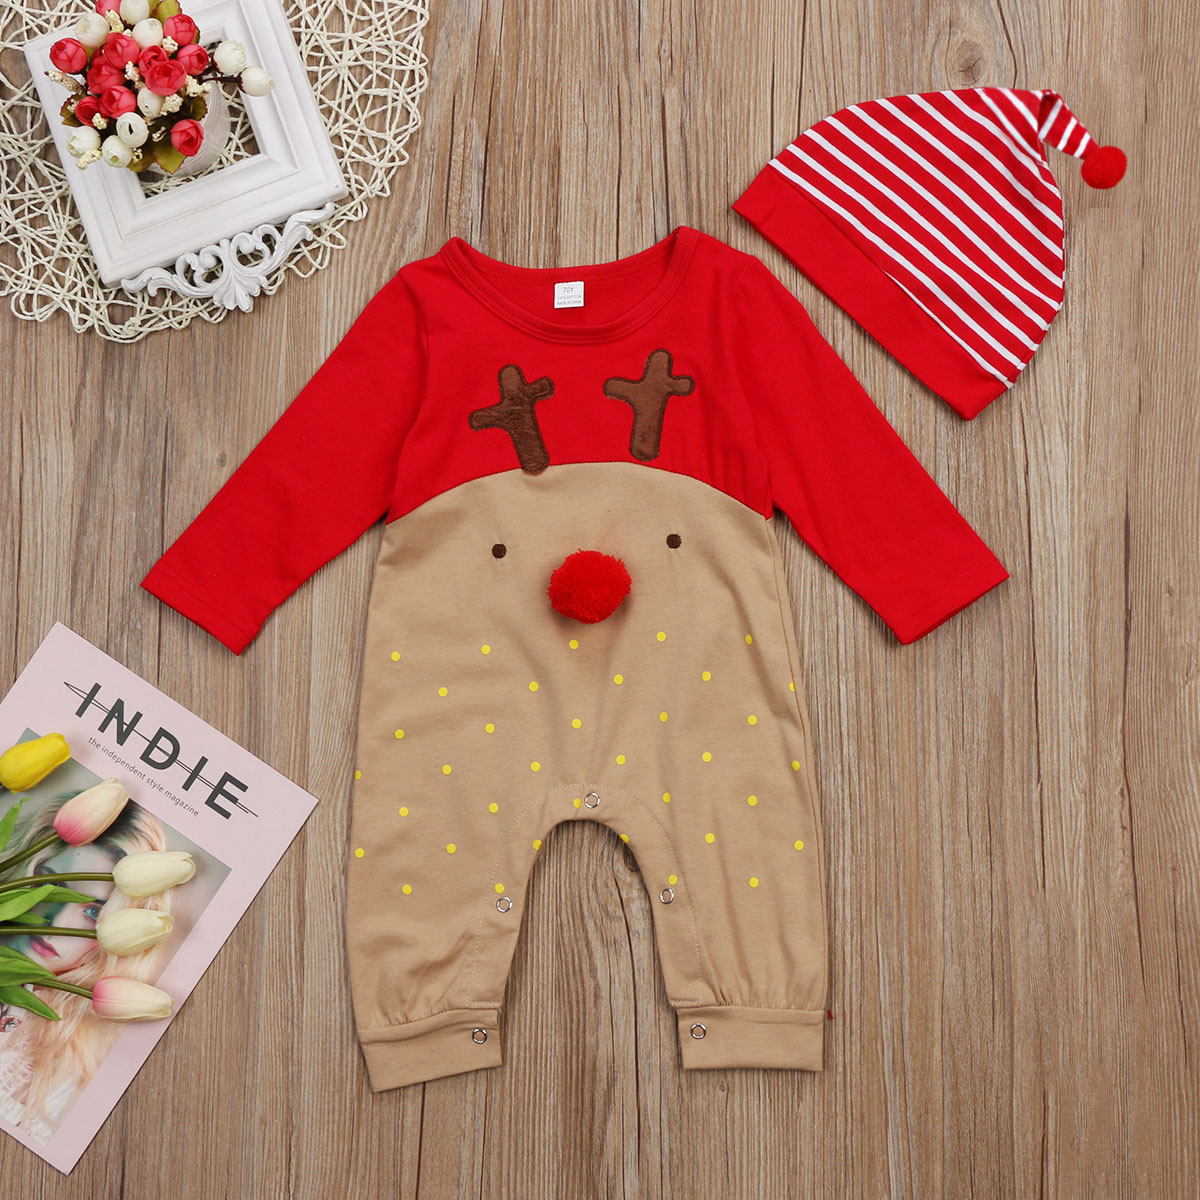 HTB1Hsa5ahz1gK0jSZSgq6yvwpXaD Emmababy 2Pcs Newborn Baby Boys Girl Christmas Rompers Long Sleeve Deer Romper Jumpsuit Hat Sleepwear Party Costume Baby Clothes